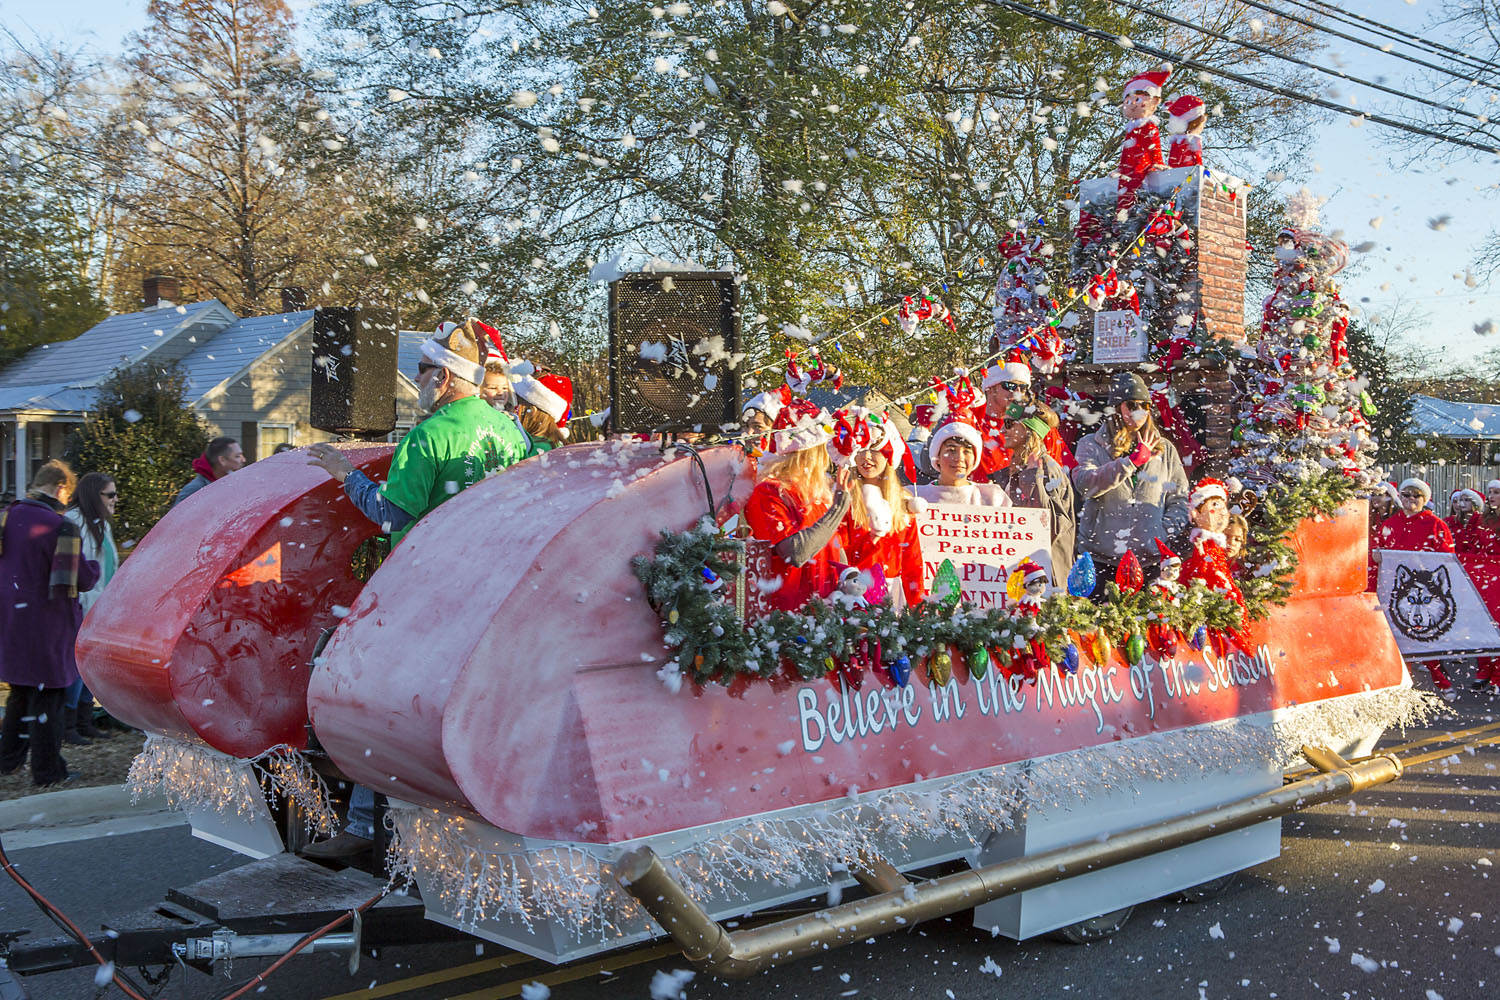 Did you miss the Trussville Christmas parade? Watch it here